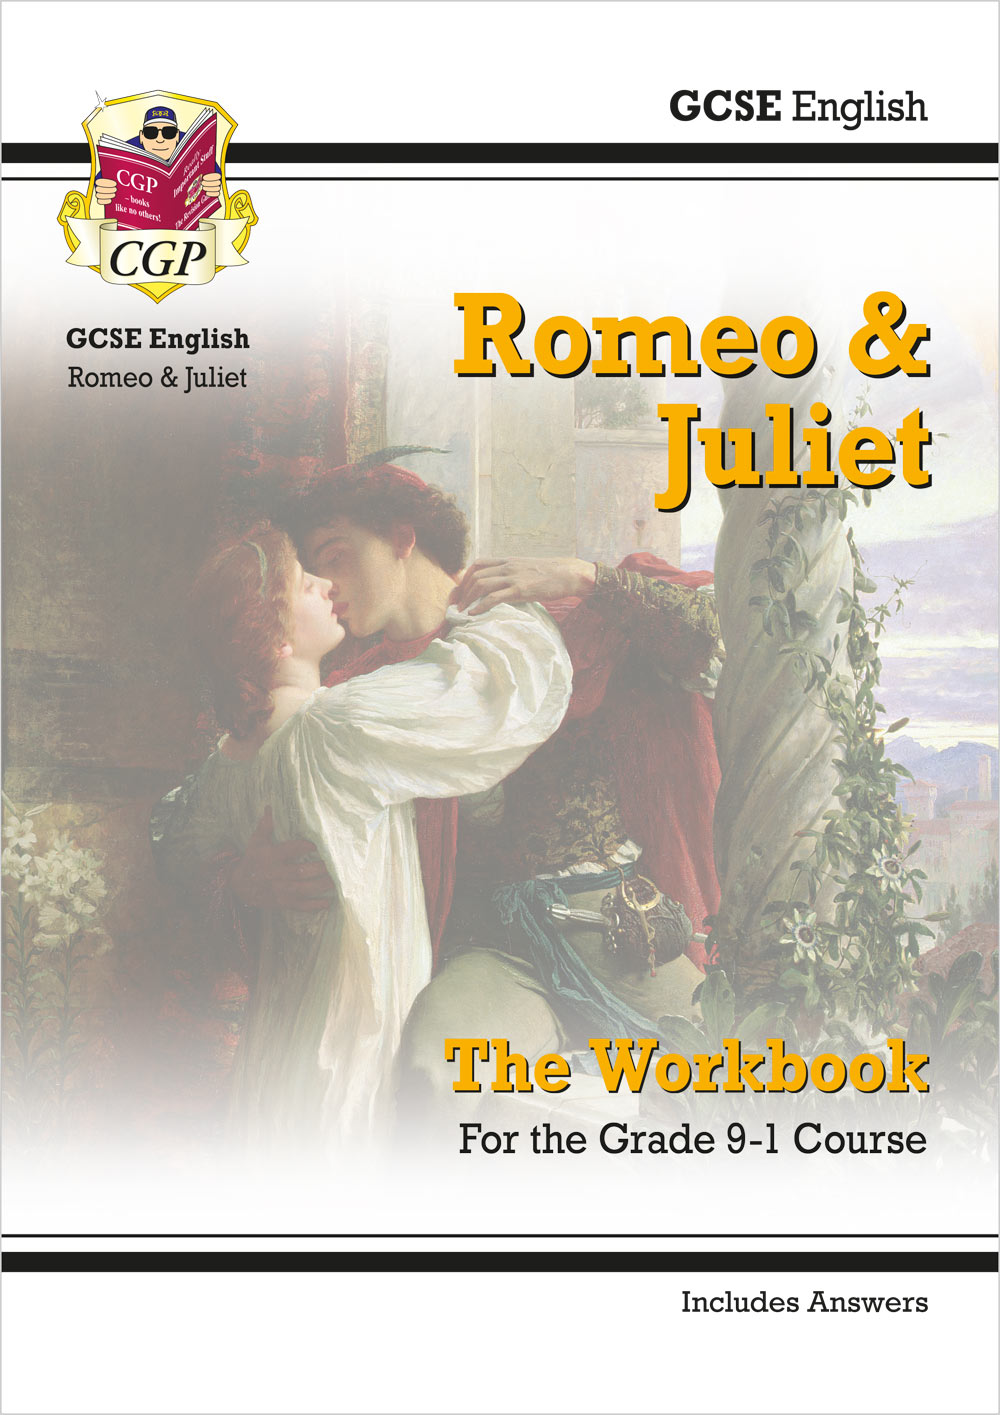 ETWR41 - New Grade 9-1 GCSE English Shakespeare - Romeo & Juliet Workbook (includes Answers)